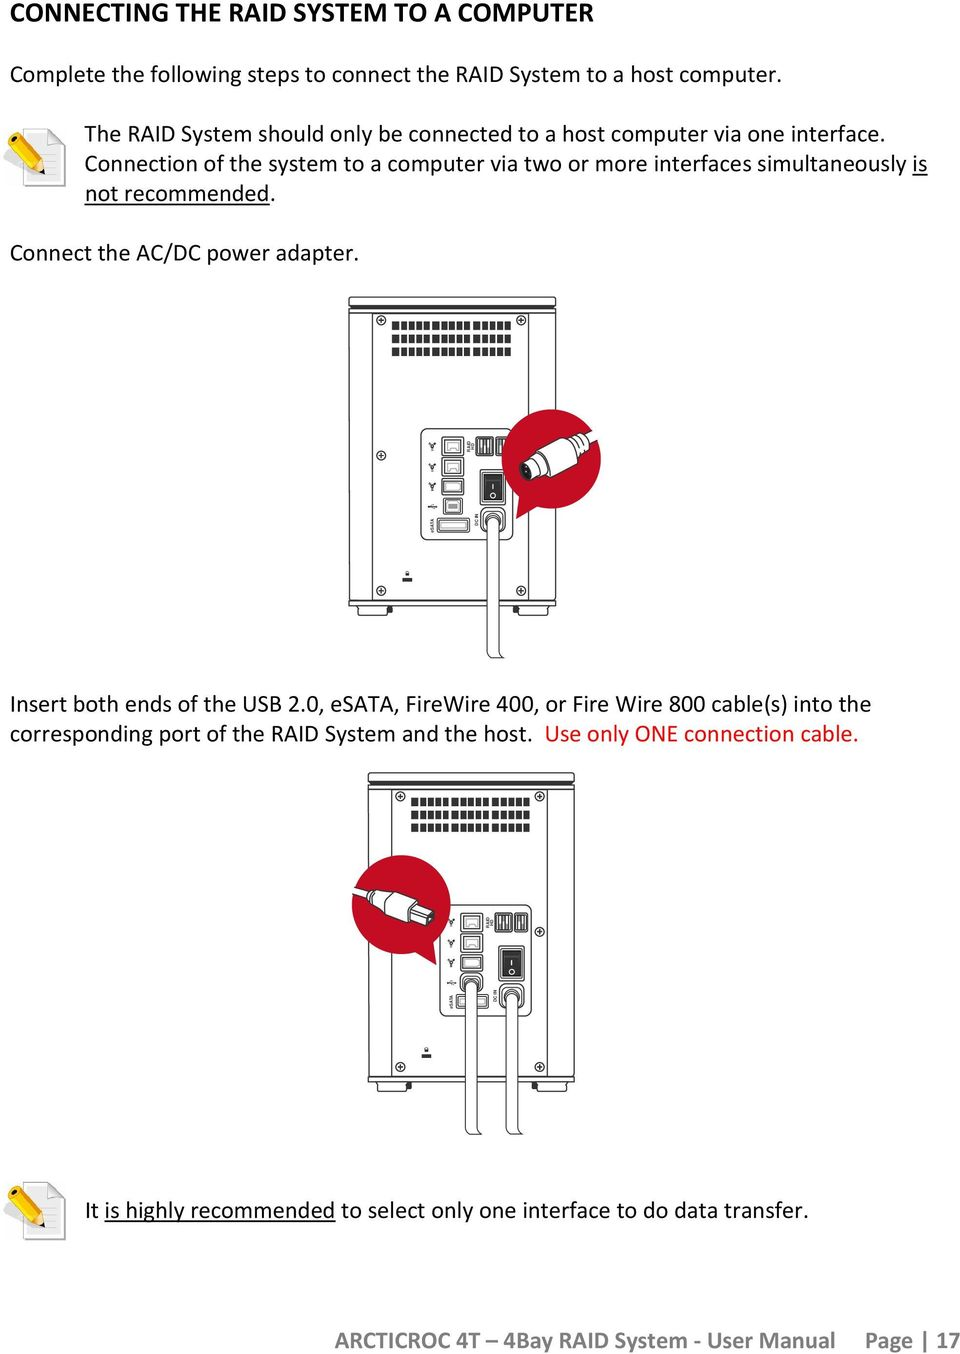 Arcticroc 4t User Manual Pdf Firewire Wire Diagram Connection Of The System To A Computer Via Two Or More Interfaces Simultaneously Is Not Recommended